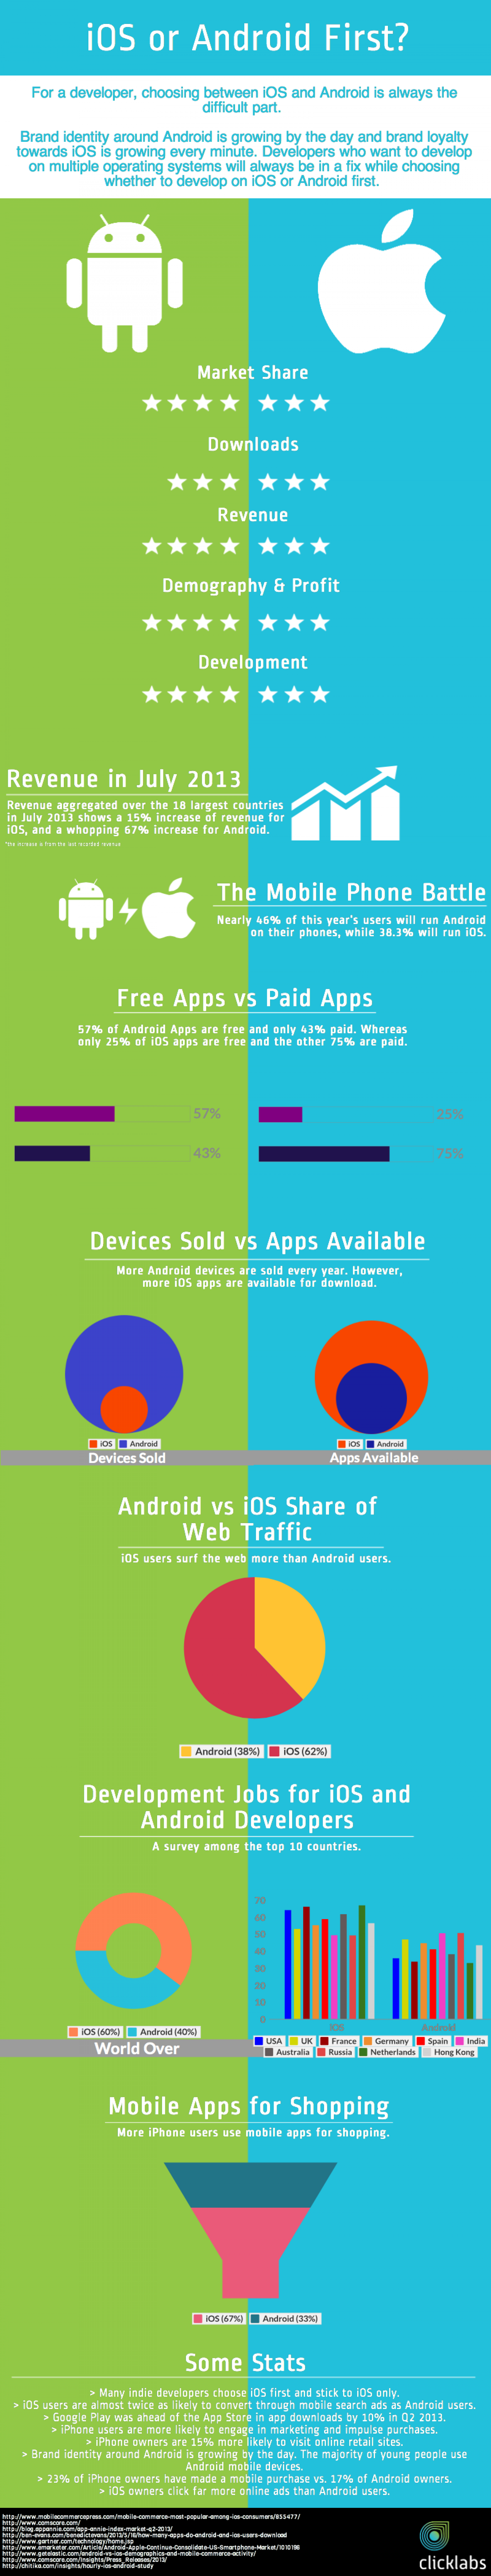 iOS vs Android Infographic